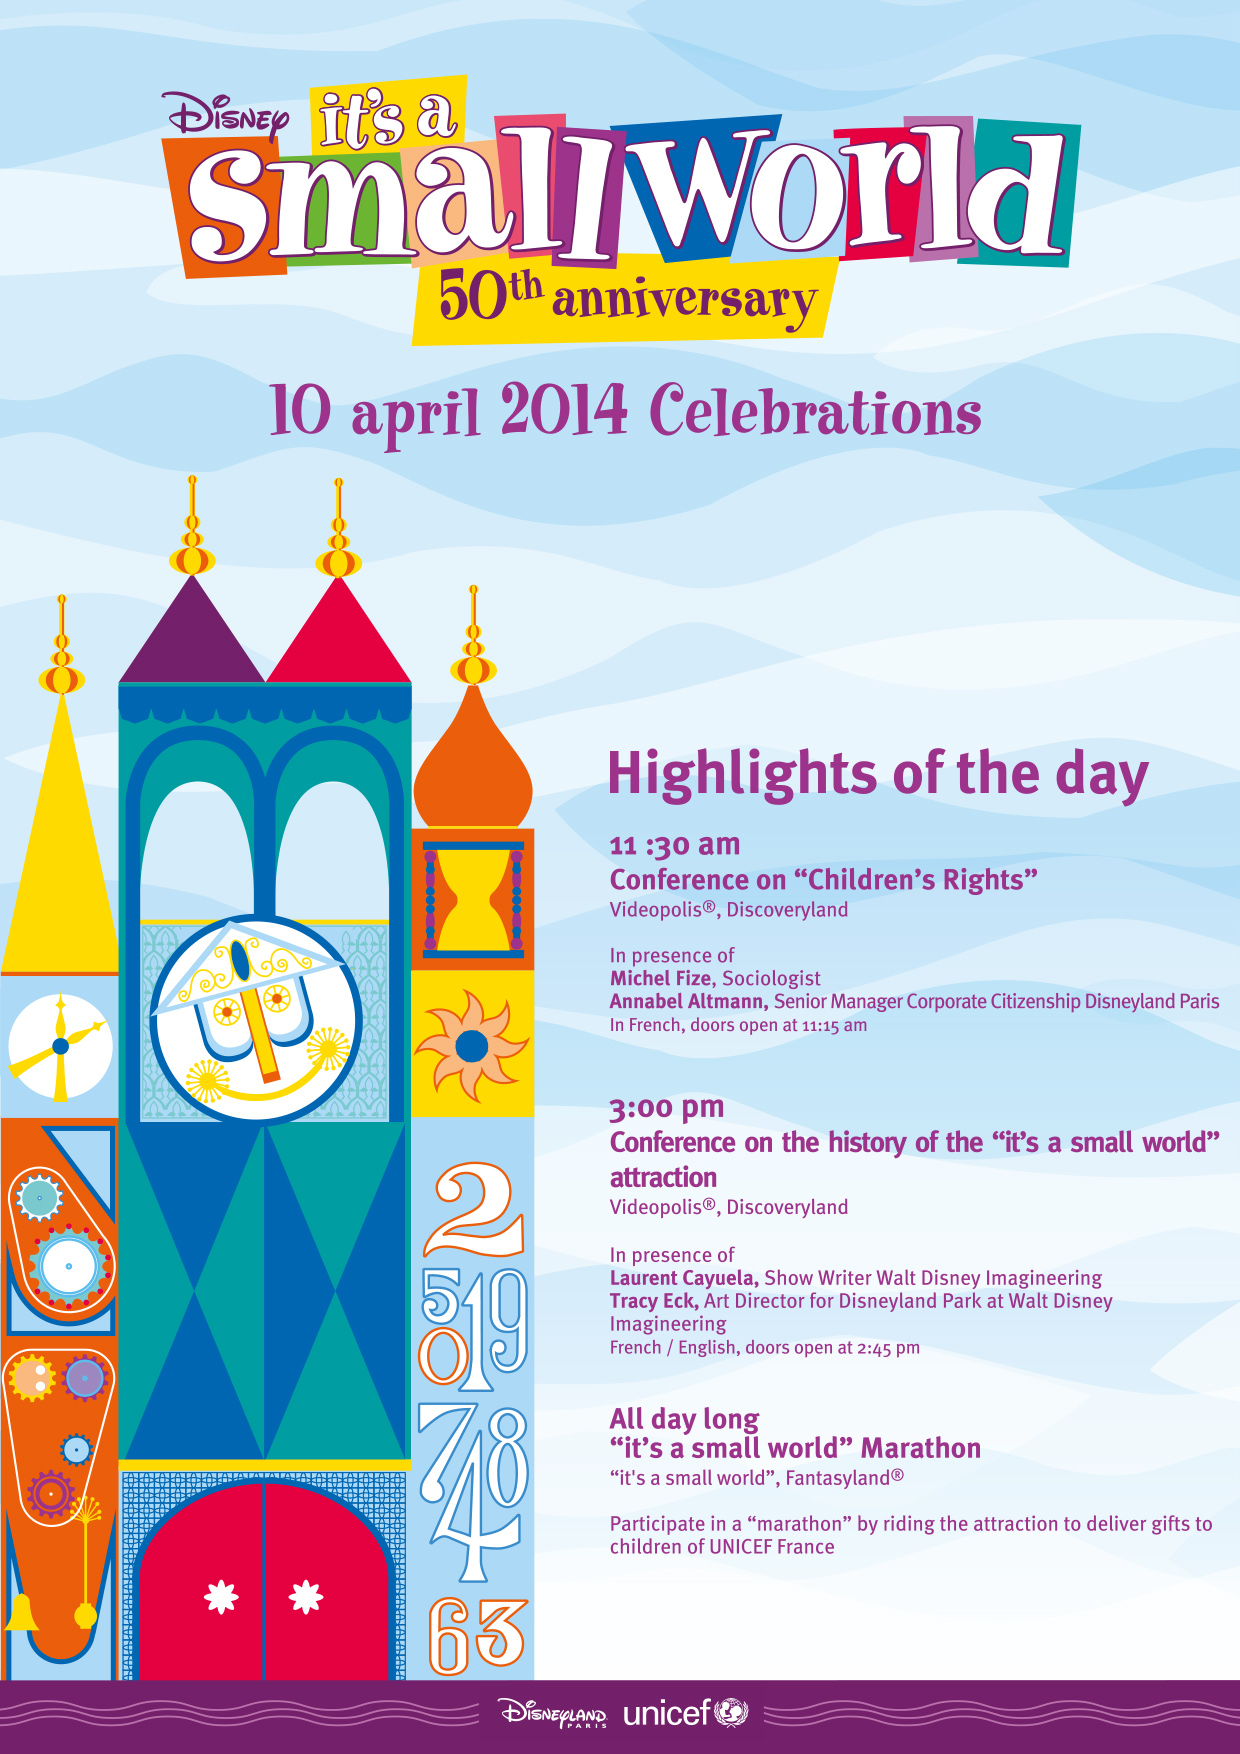 It's a Small World 50th Anniversary agenda - Disneyland Paris